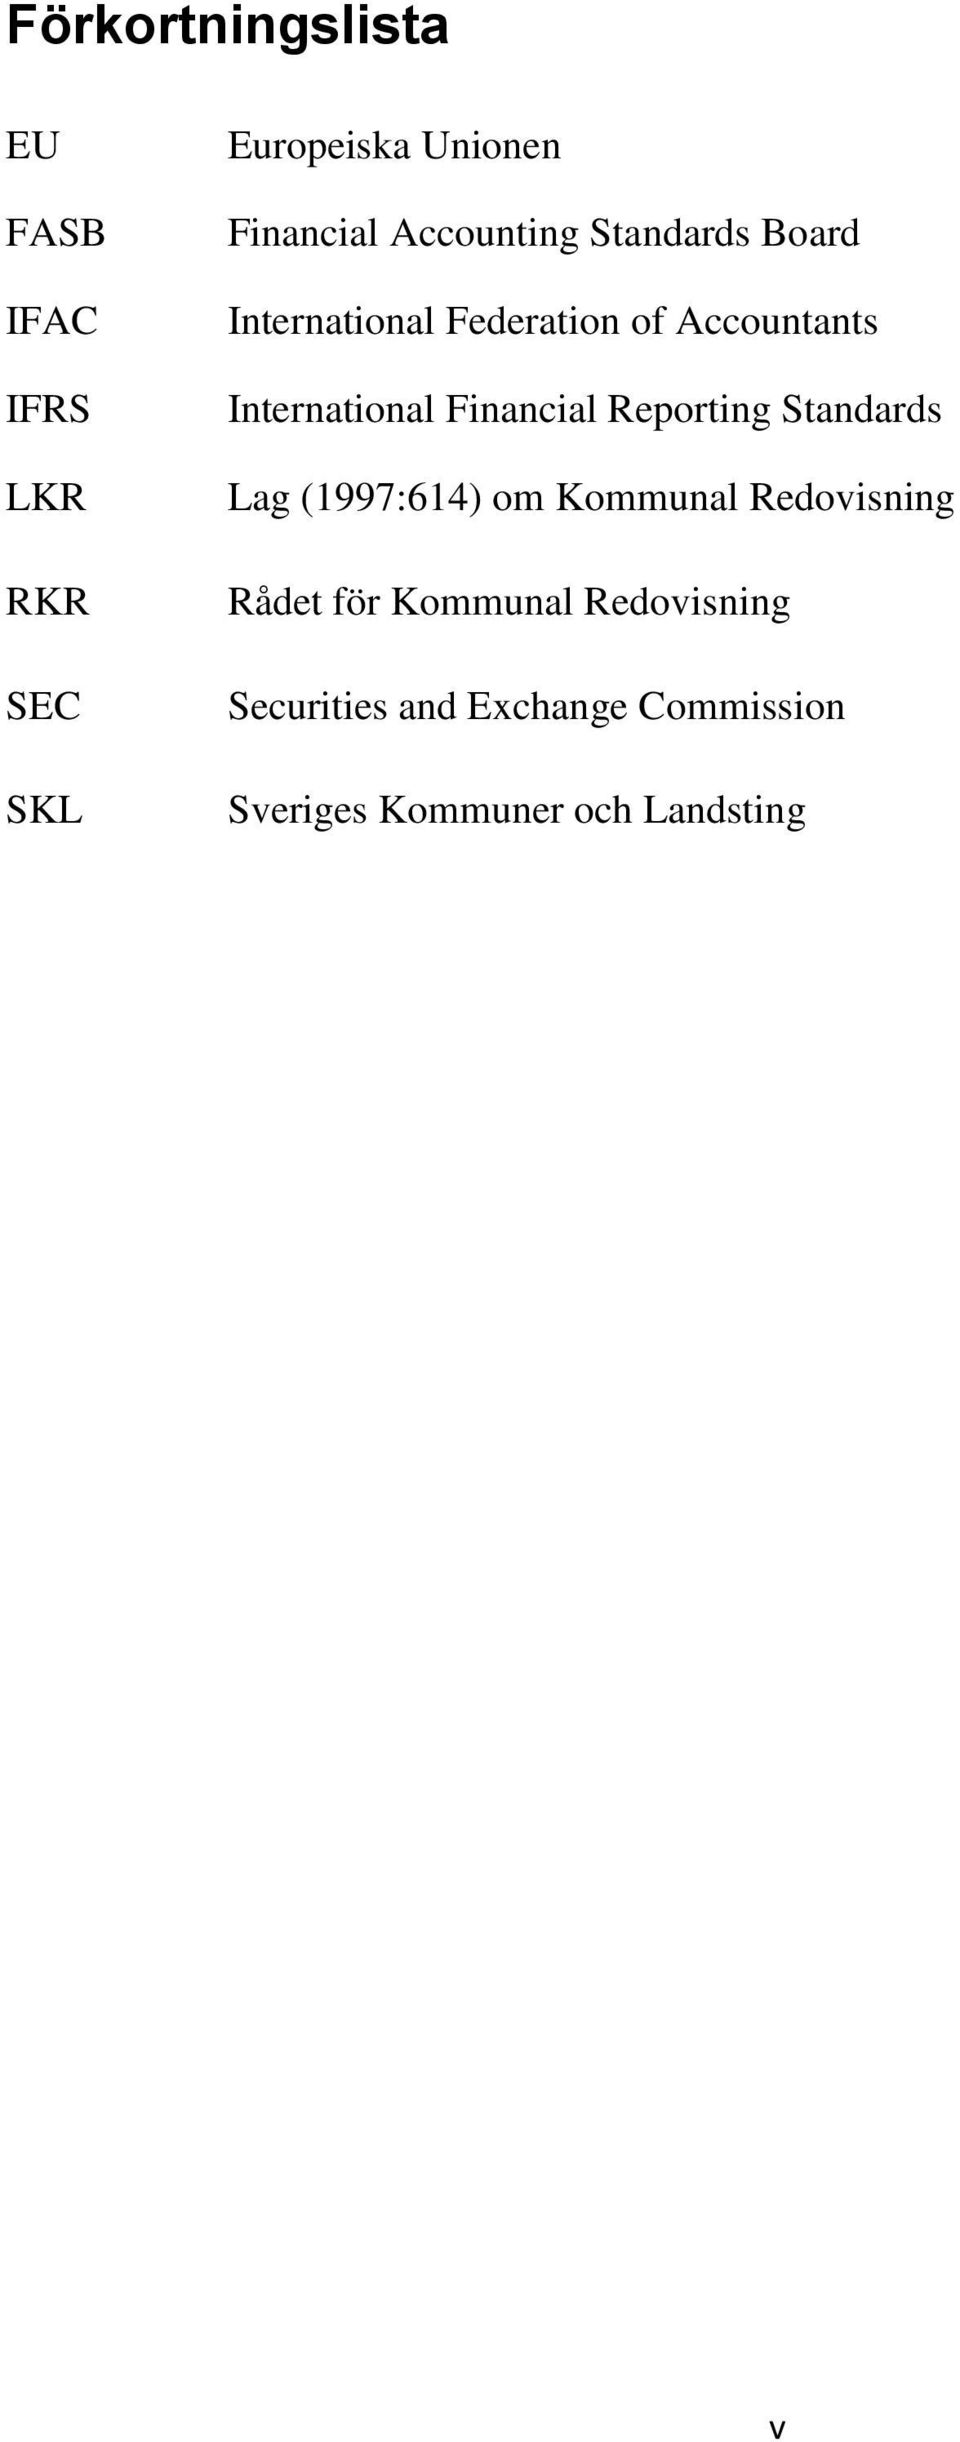 Financial Reporting Standards Lag (1997:614) om Kommunal Redovisning Rådet för